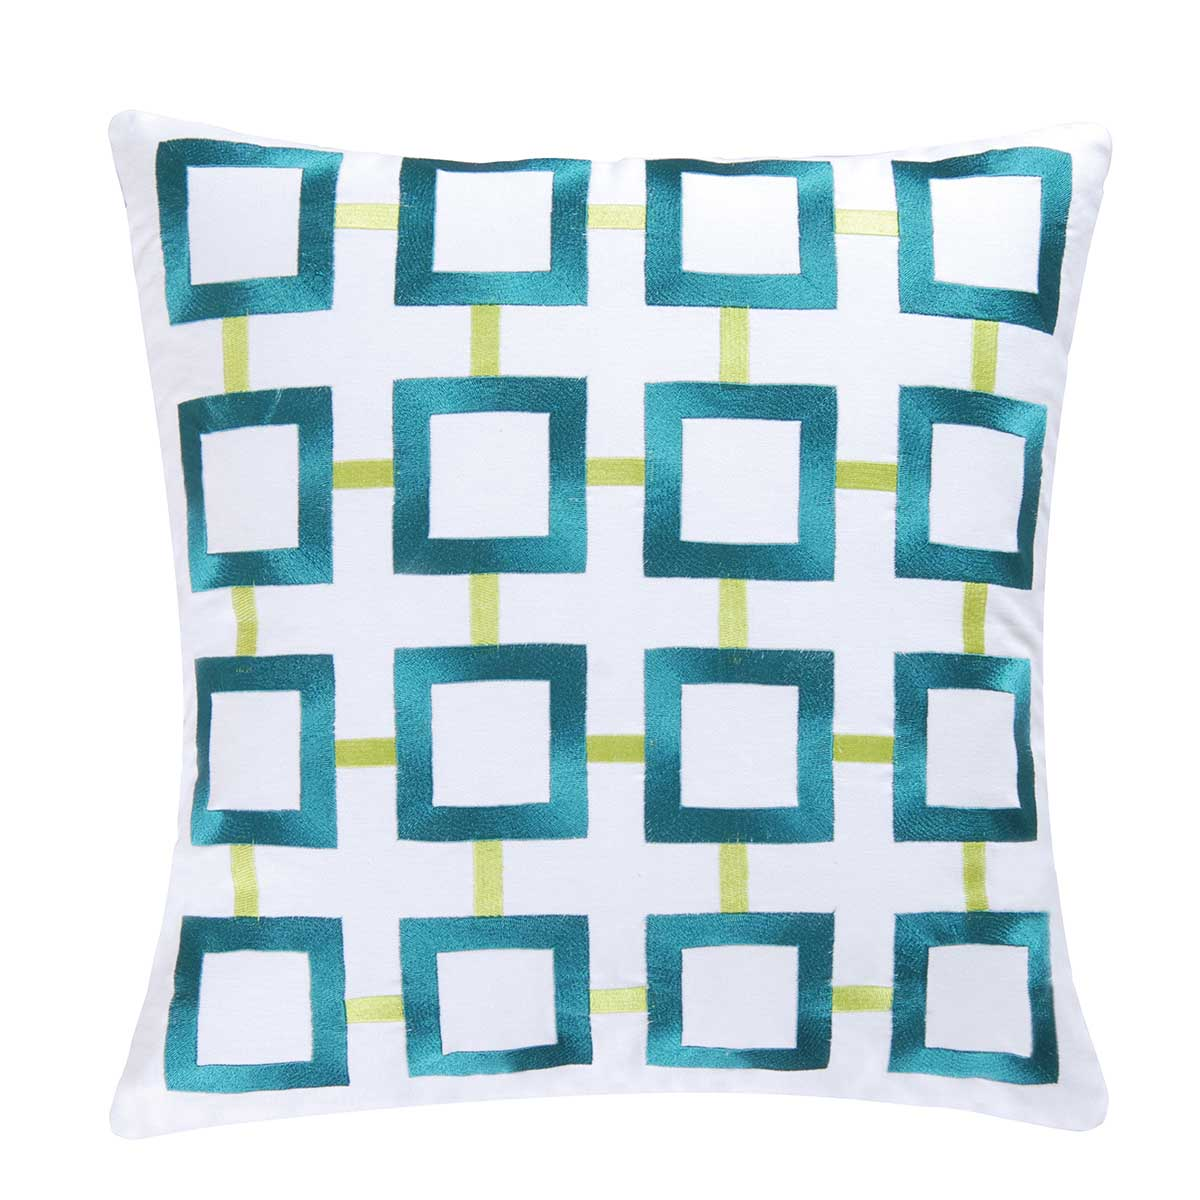 C&F Home_Carol's Attic_Decorative Pillows_Everyday.jpg